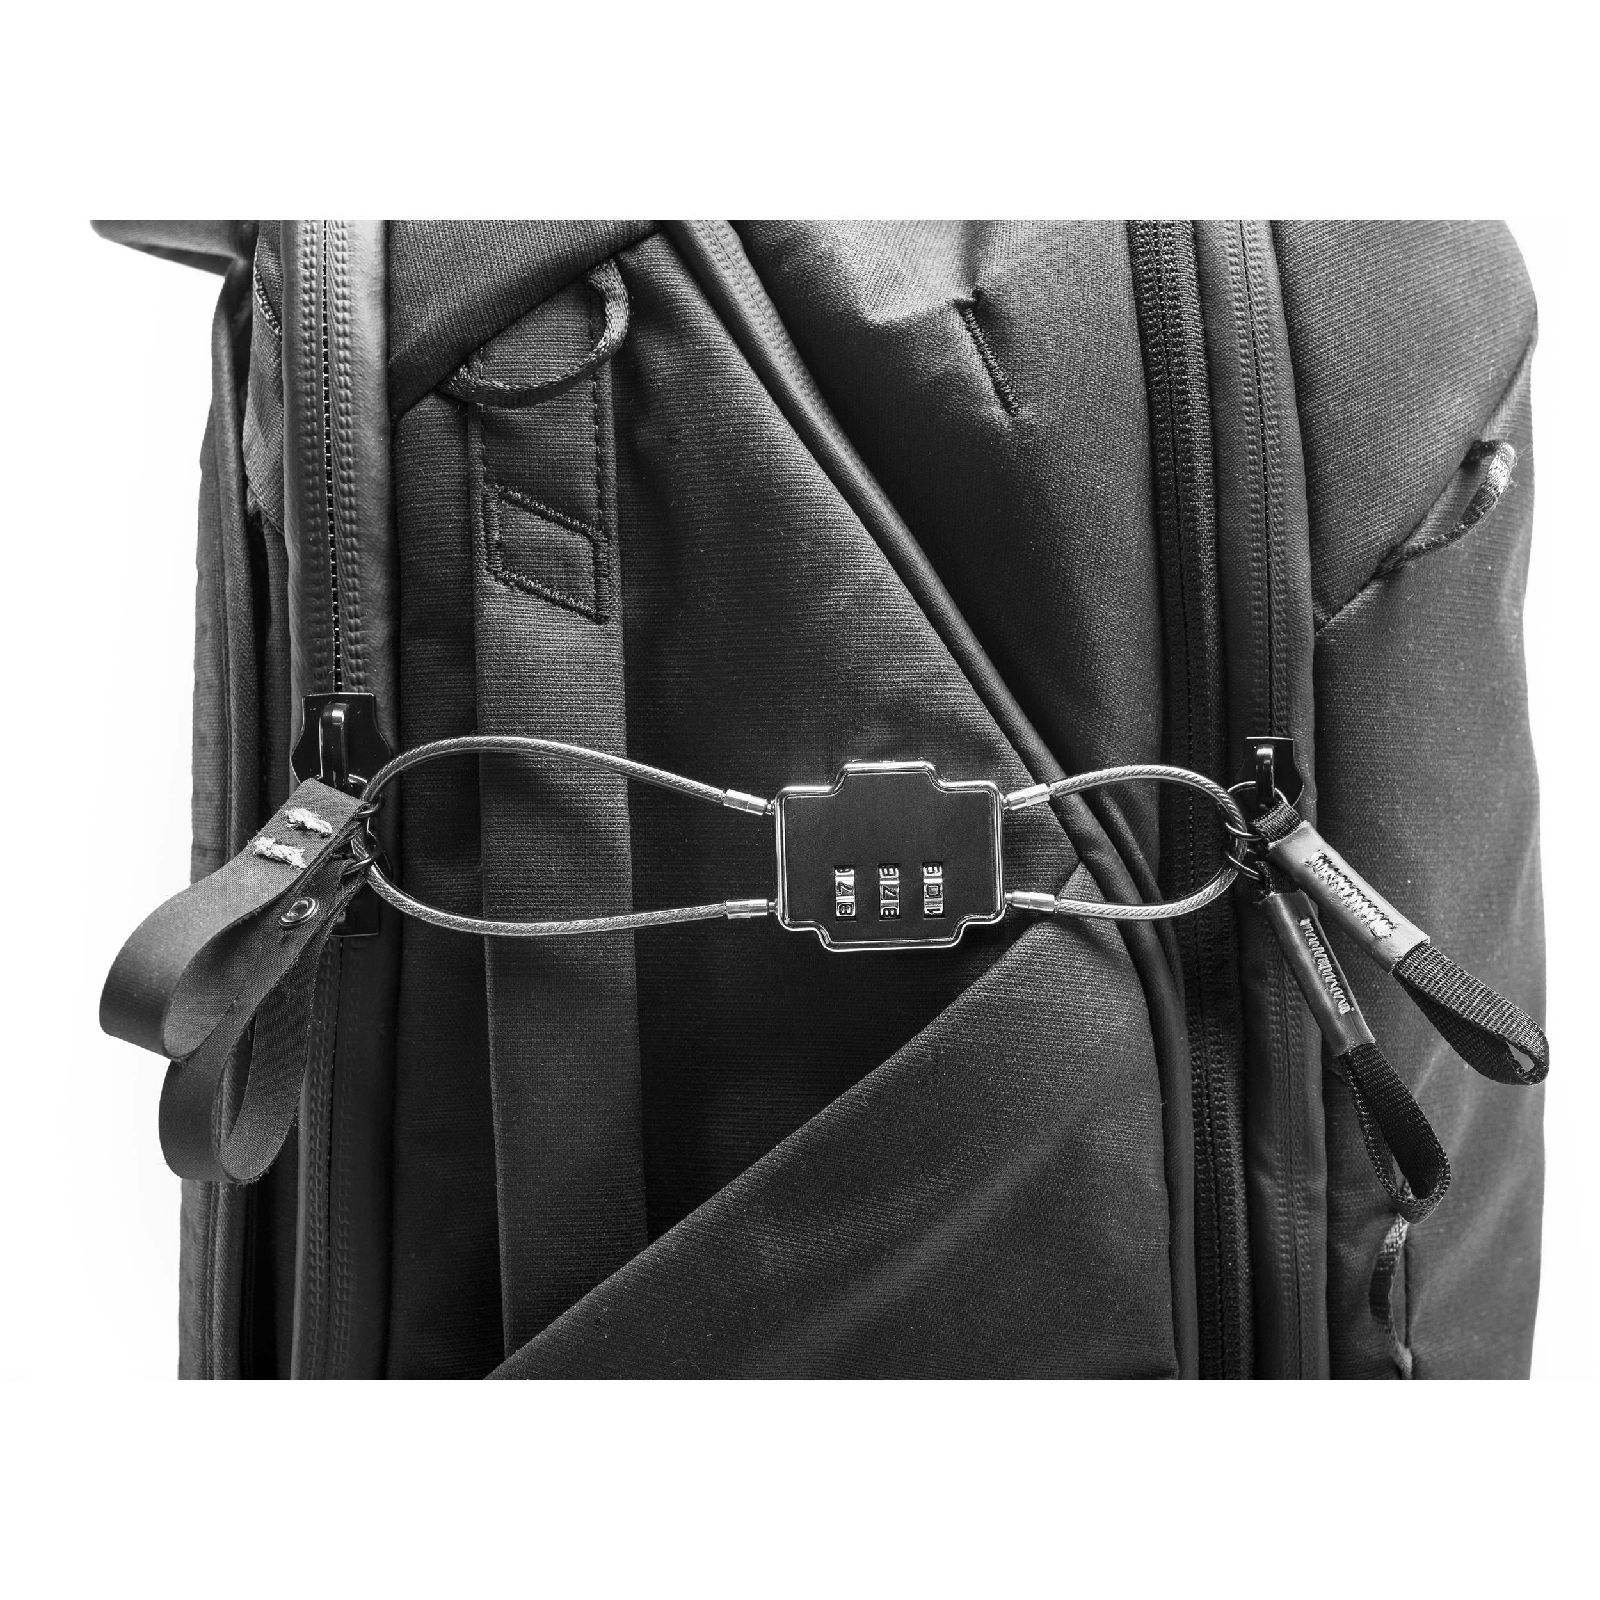 904abe89f Peak Design Travel Backpack 45L Black ruksak za fotoaparat i foto opremu  (BTR-45-BK-1)